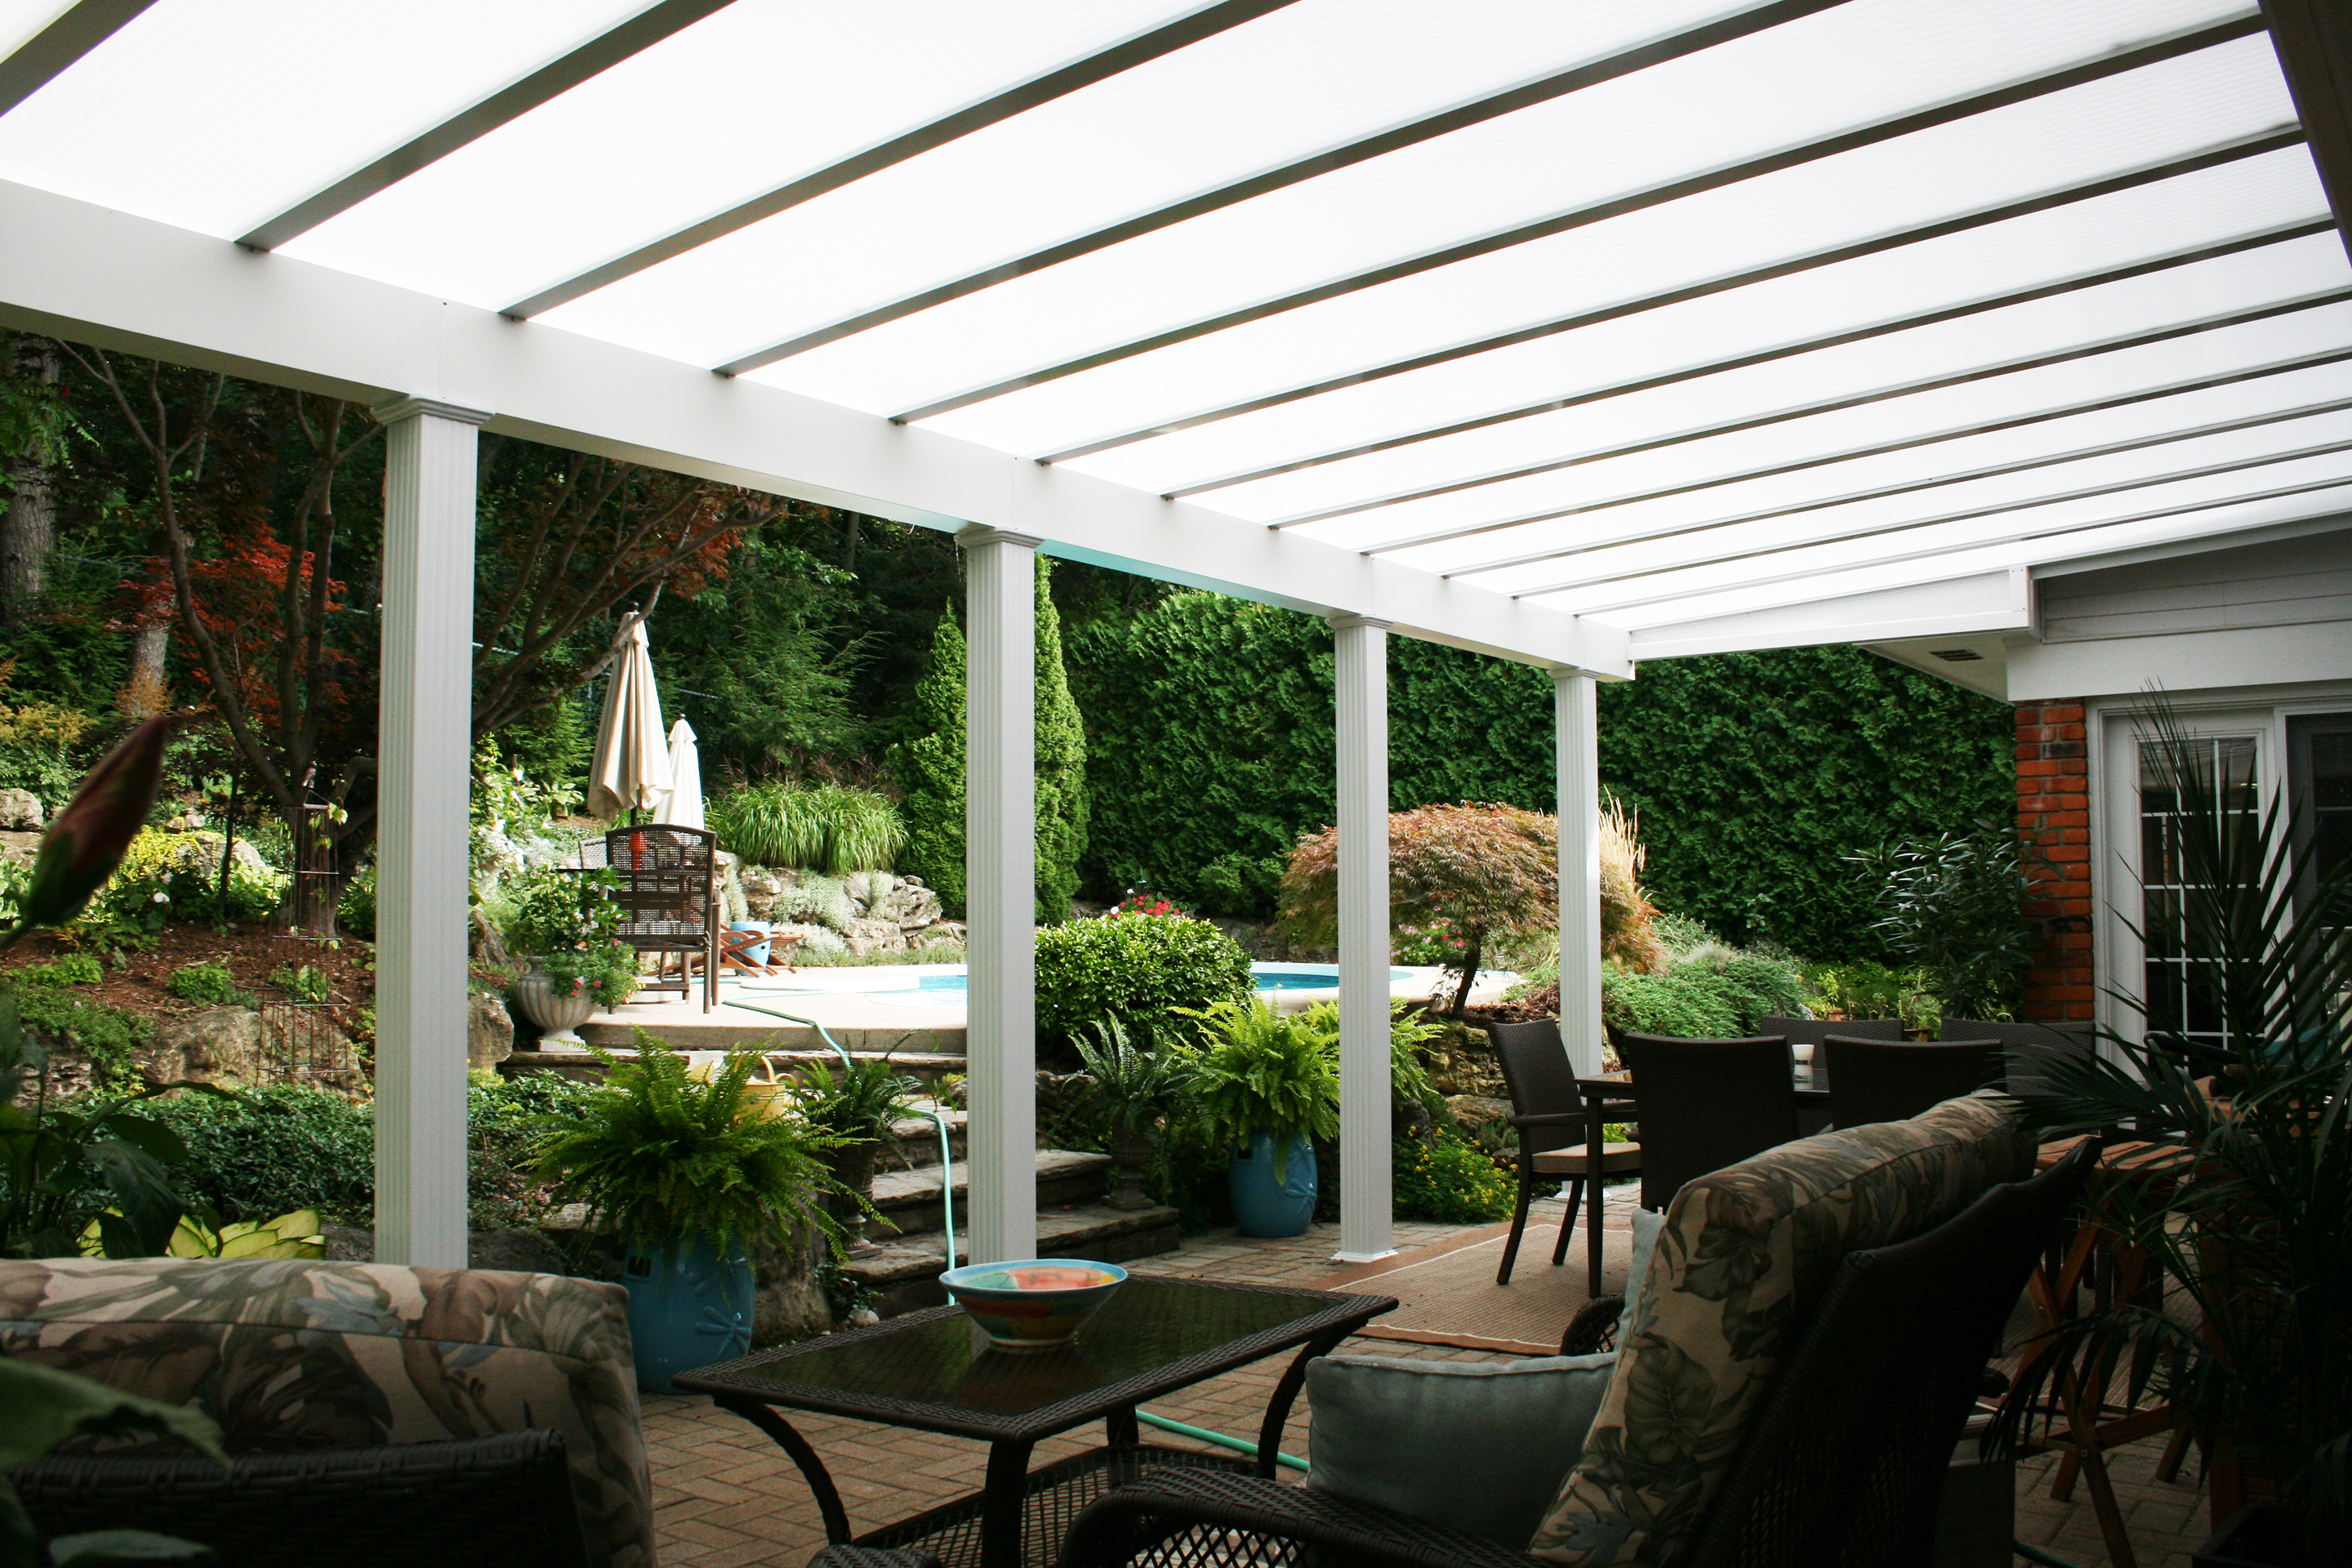 patio cover, patio cover options, patio cover options in toronto, patio cover options in vancouver, glass patio cover, acrylic patio cover, pergola sun shade, pergola, lumon, lumon patio cover, lumon glass patio cover, patio cover hamilton, patio cover niagara, patio cover victoria,